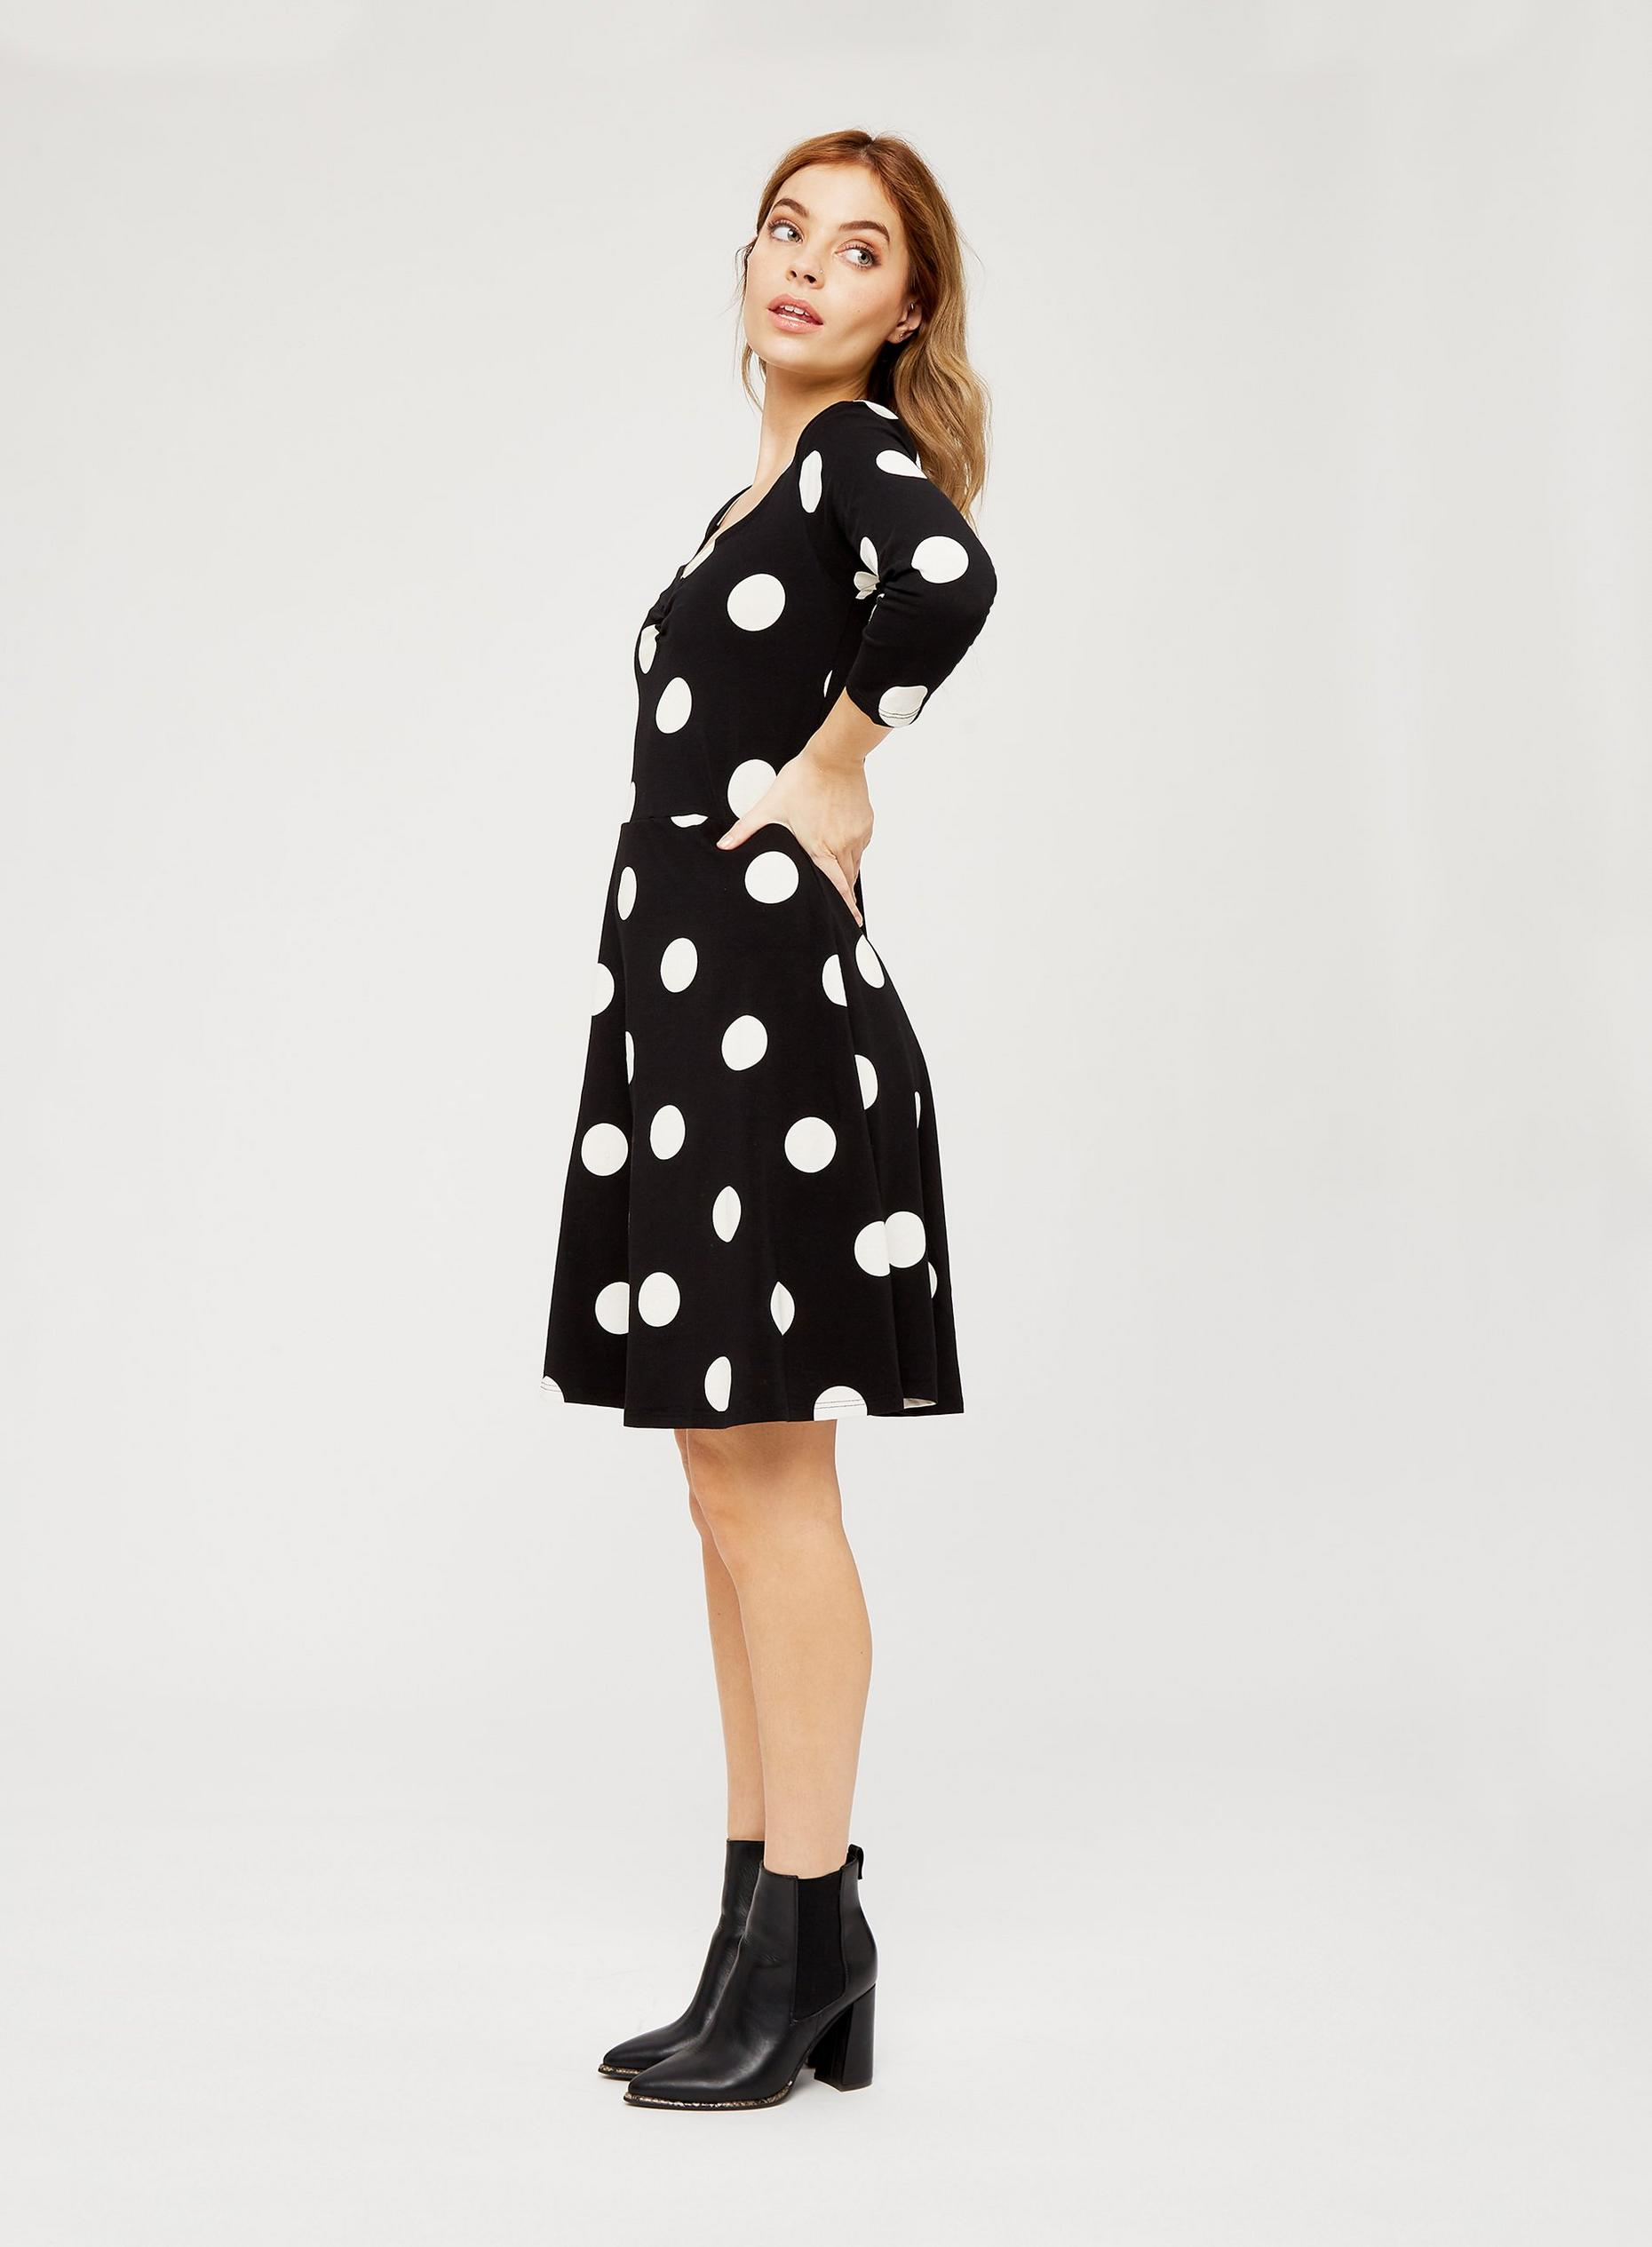 Petite Black Spot Dress